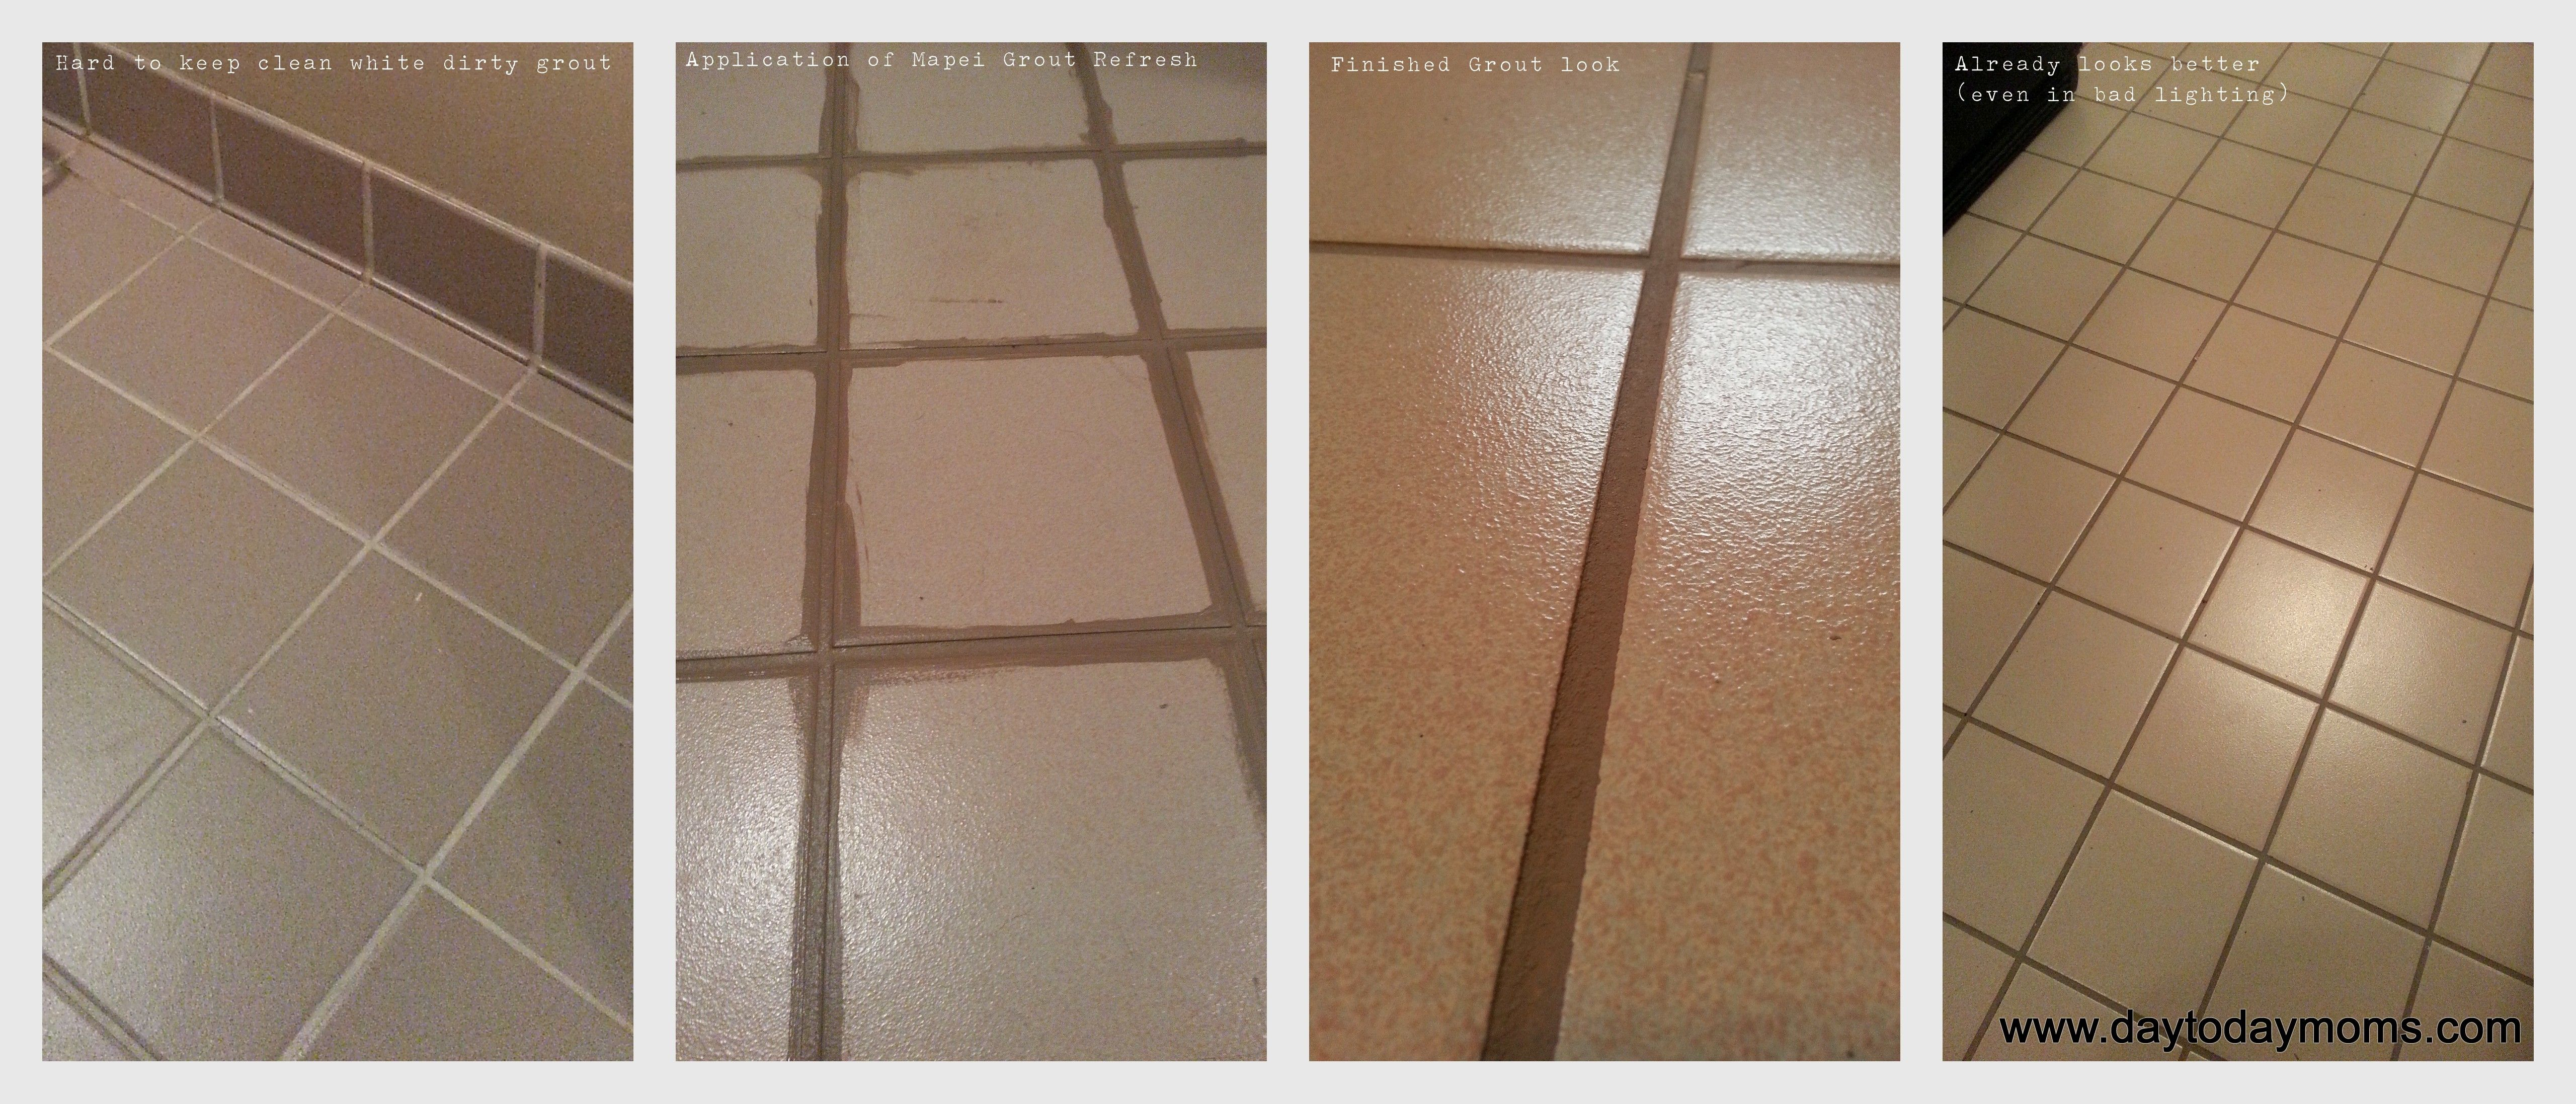 Recoloring Grout Made Easy -Mapei Grout Refresh | Mapei ...